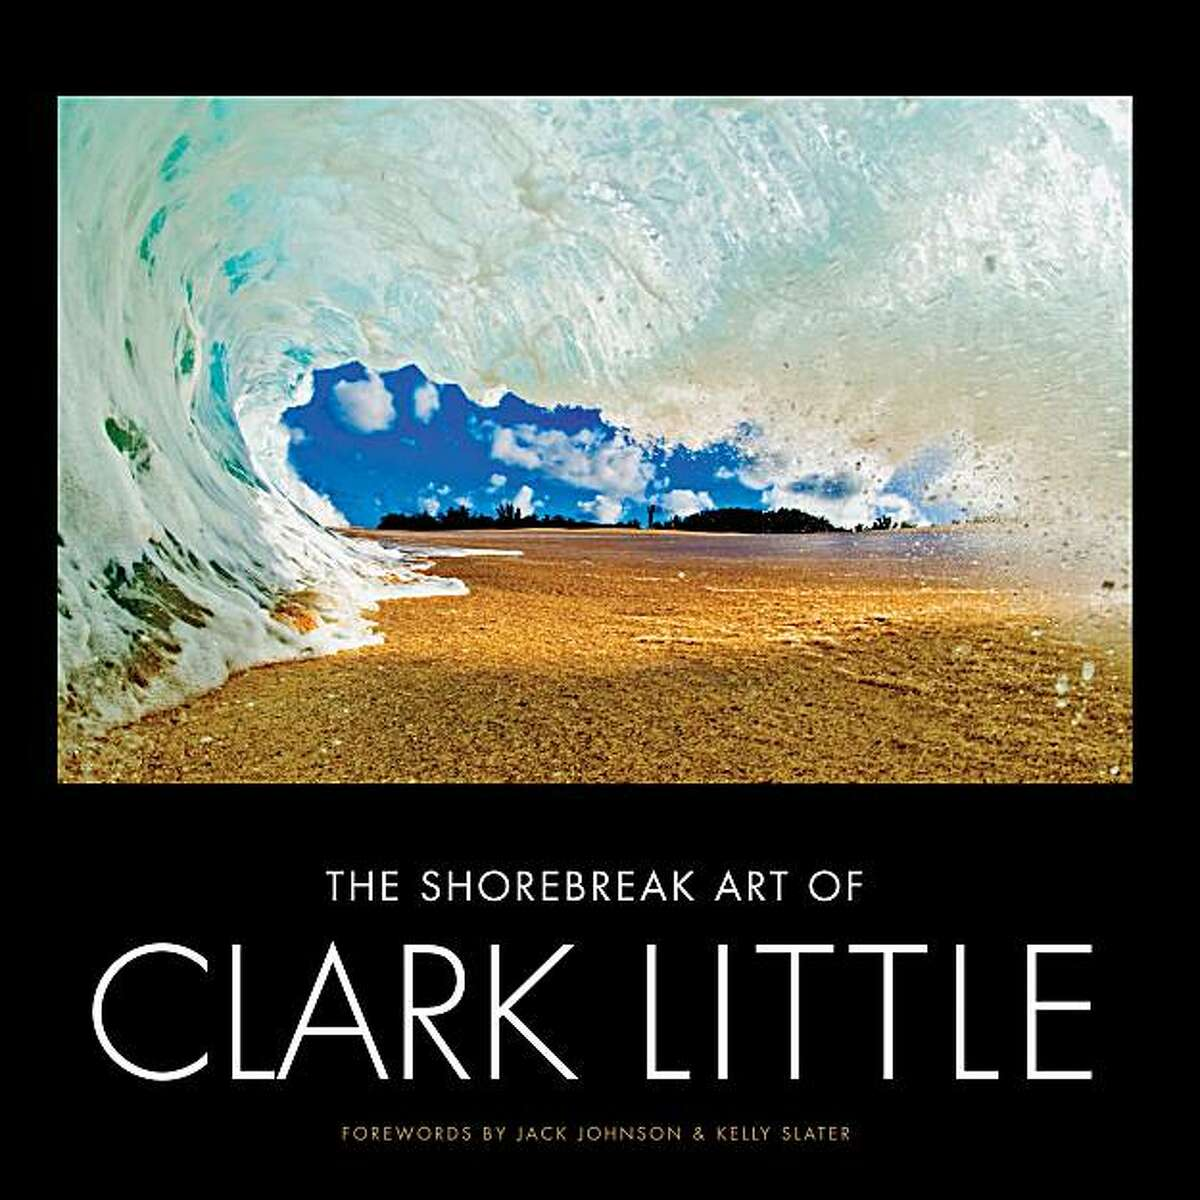 North Shore surf photographer Clark Little's stunning shorebreak images are available in a coffee-table book and at galleries in Hawai'i and California.